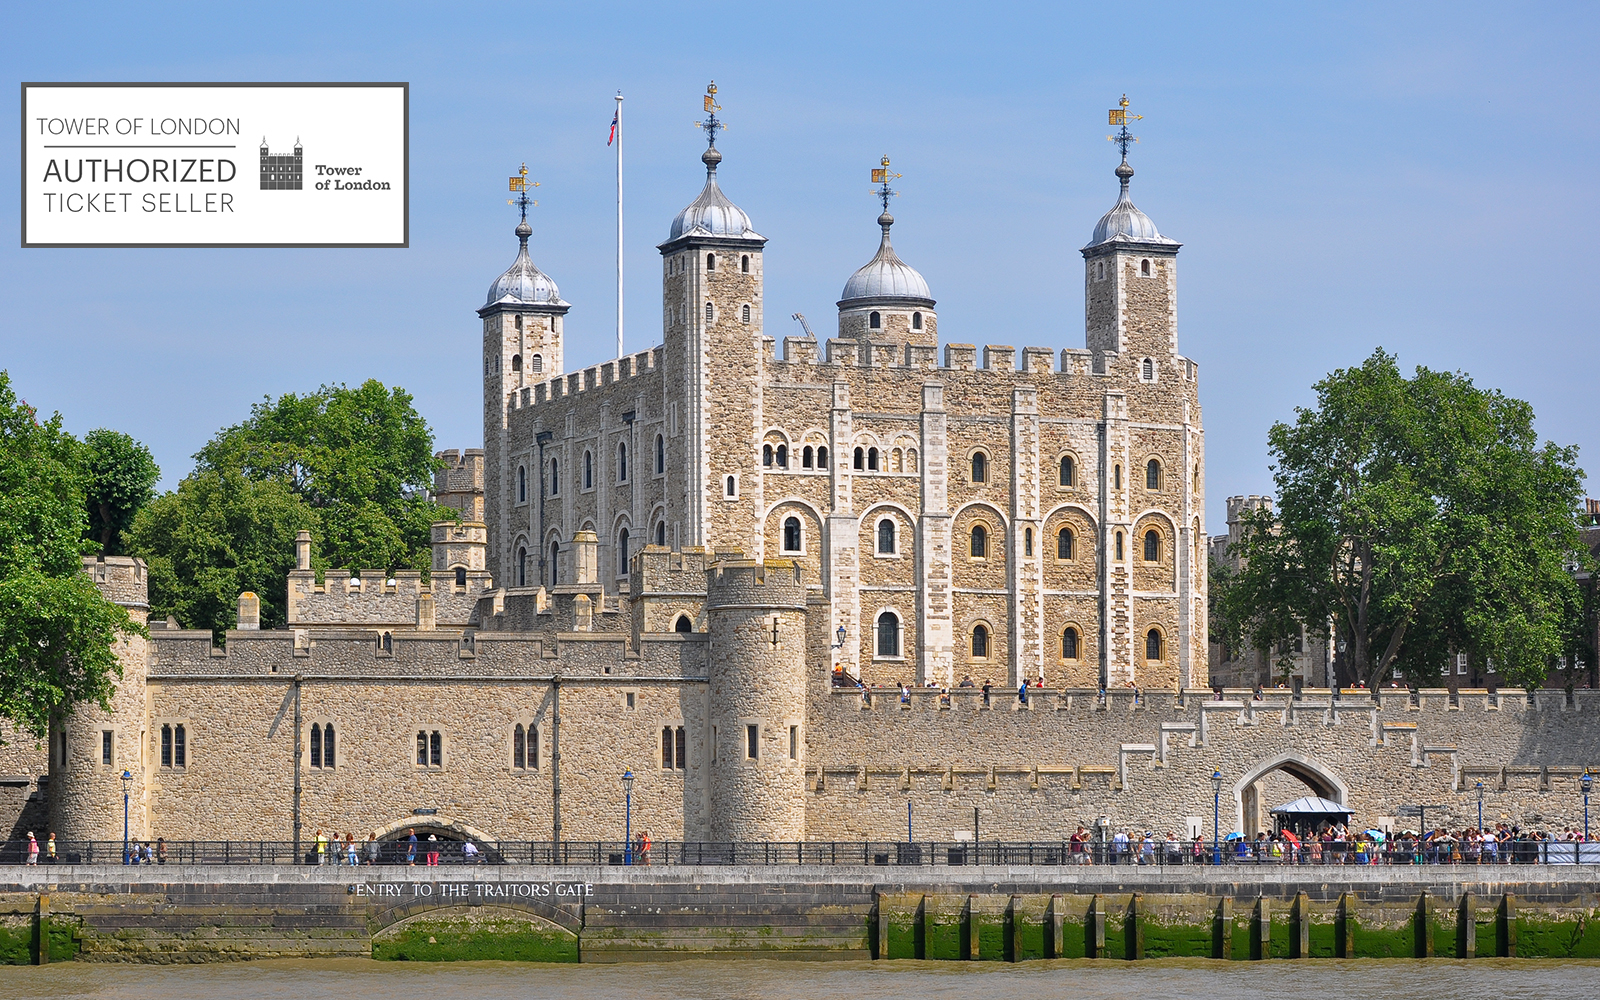 881a151e 0700 4e3f bf57 629bc277e38e 3291 london tower of london including crown jewels 03